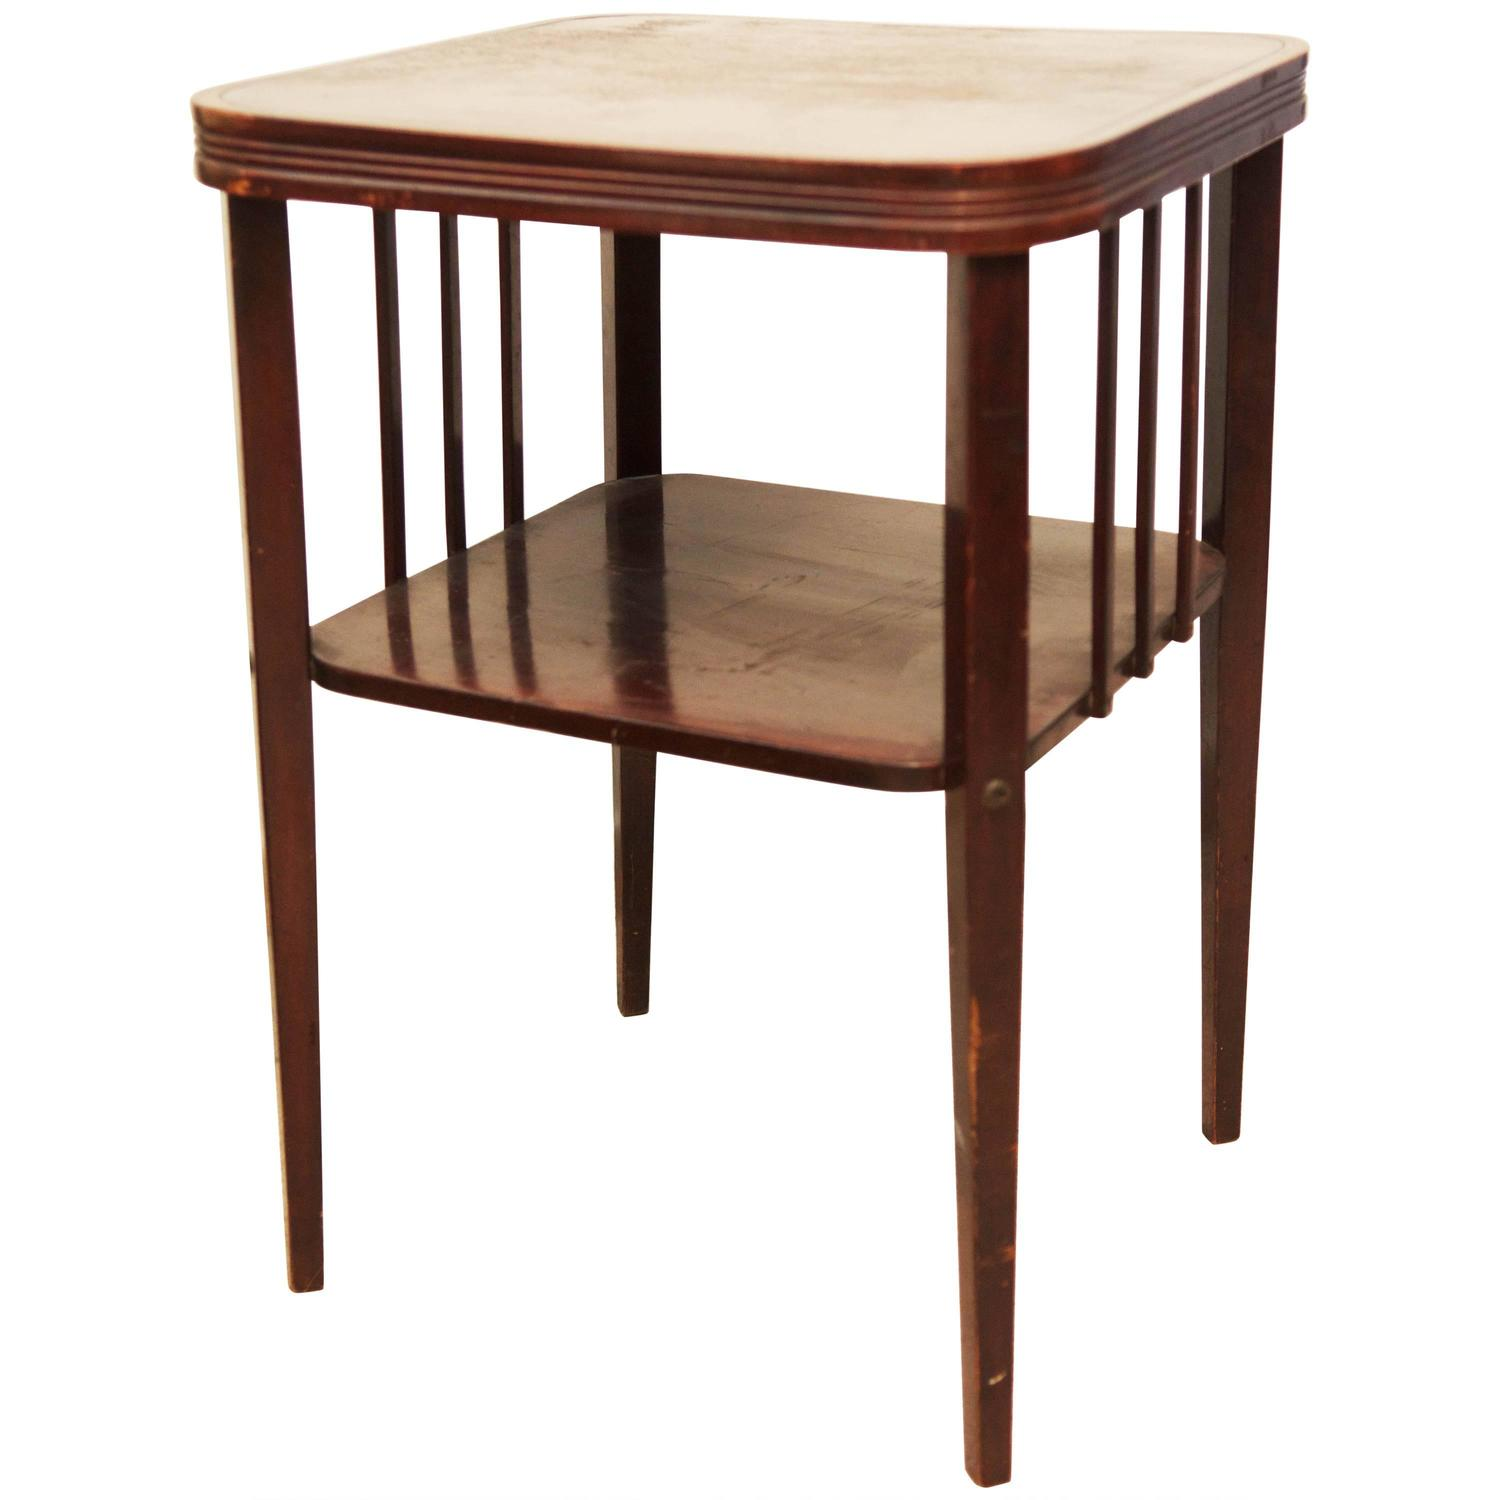 Beautiful small table by thonet for sale at 1stdibs for Table thonet